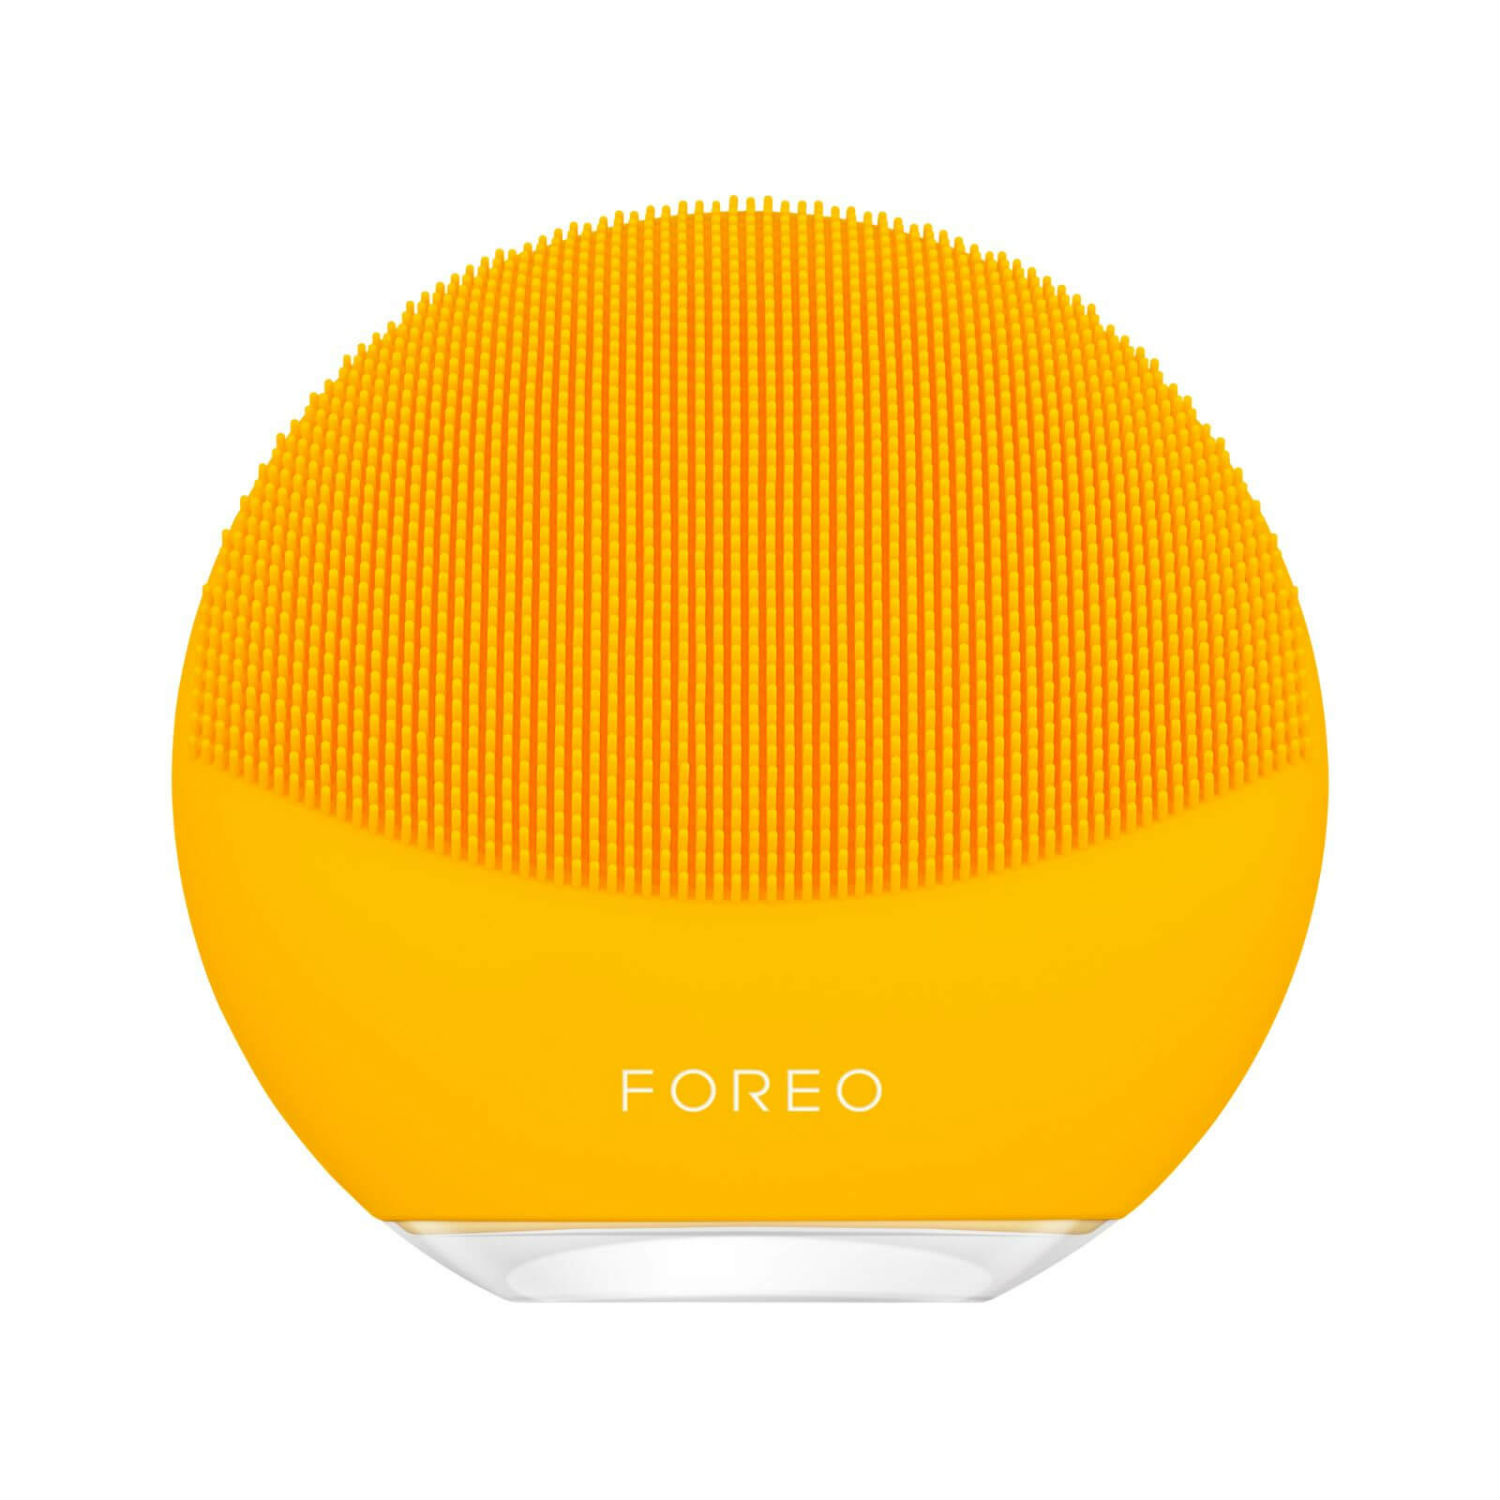 Image of Foreo Luna Mini 3 F9458 Facial Cleansing Brush - Sunflower Yellow